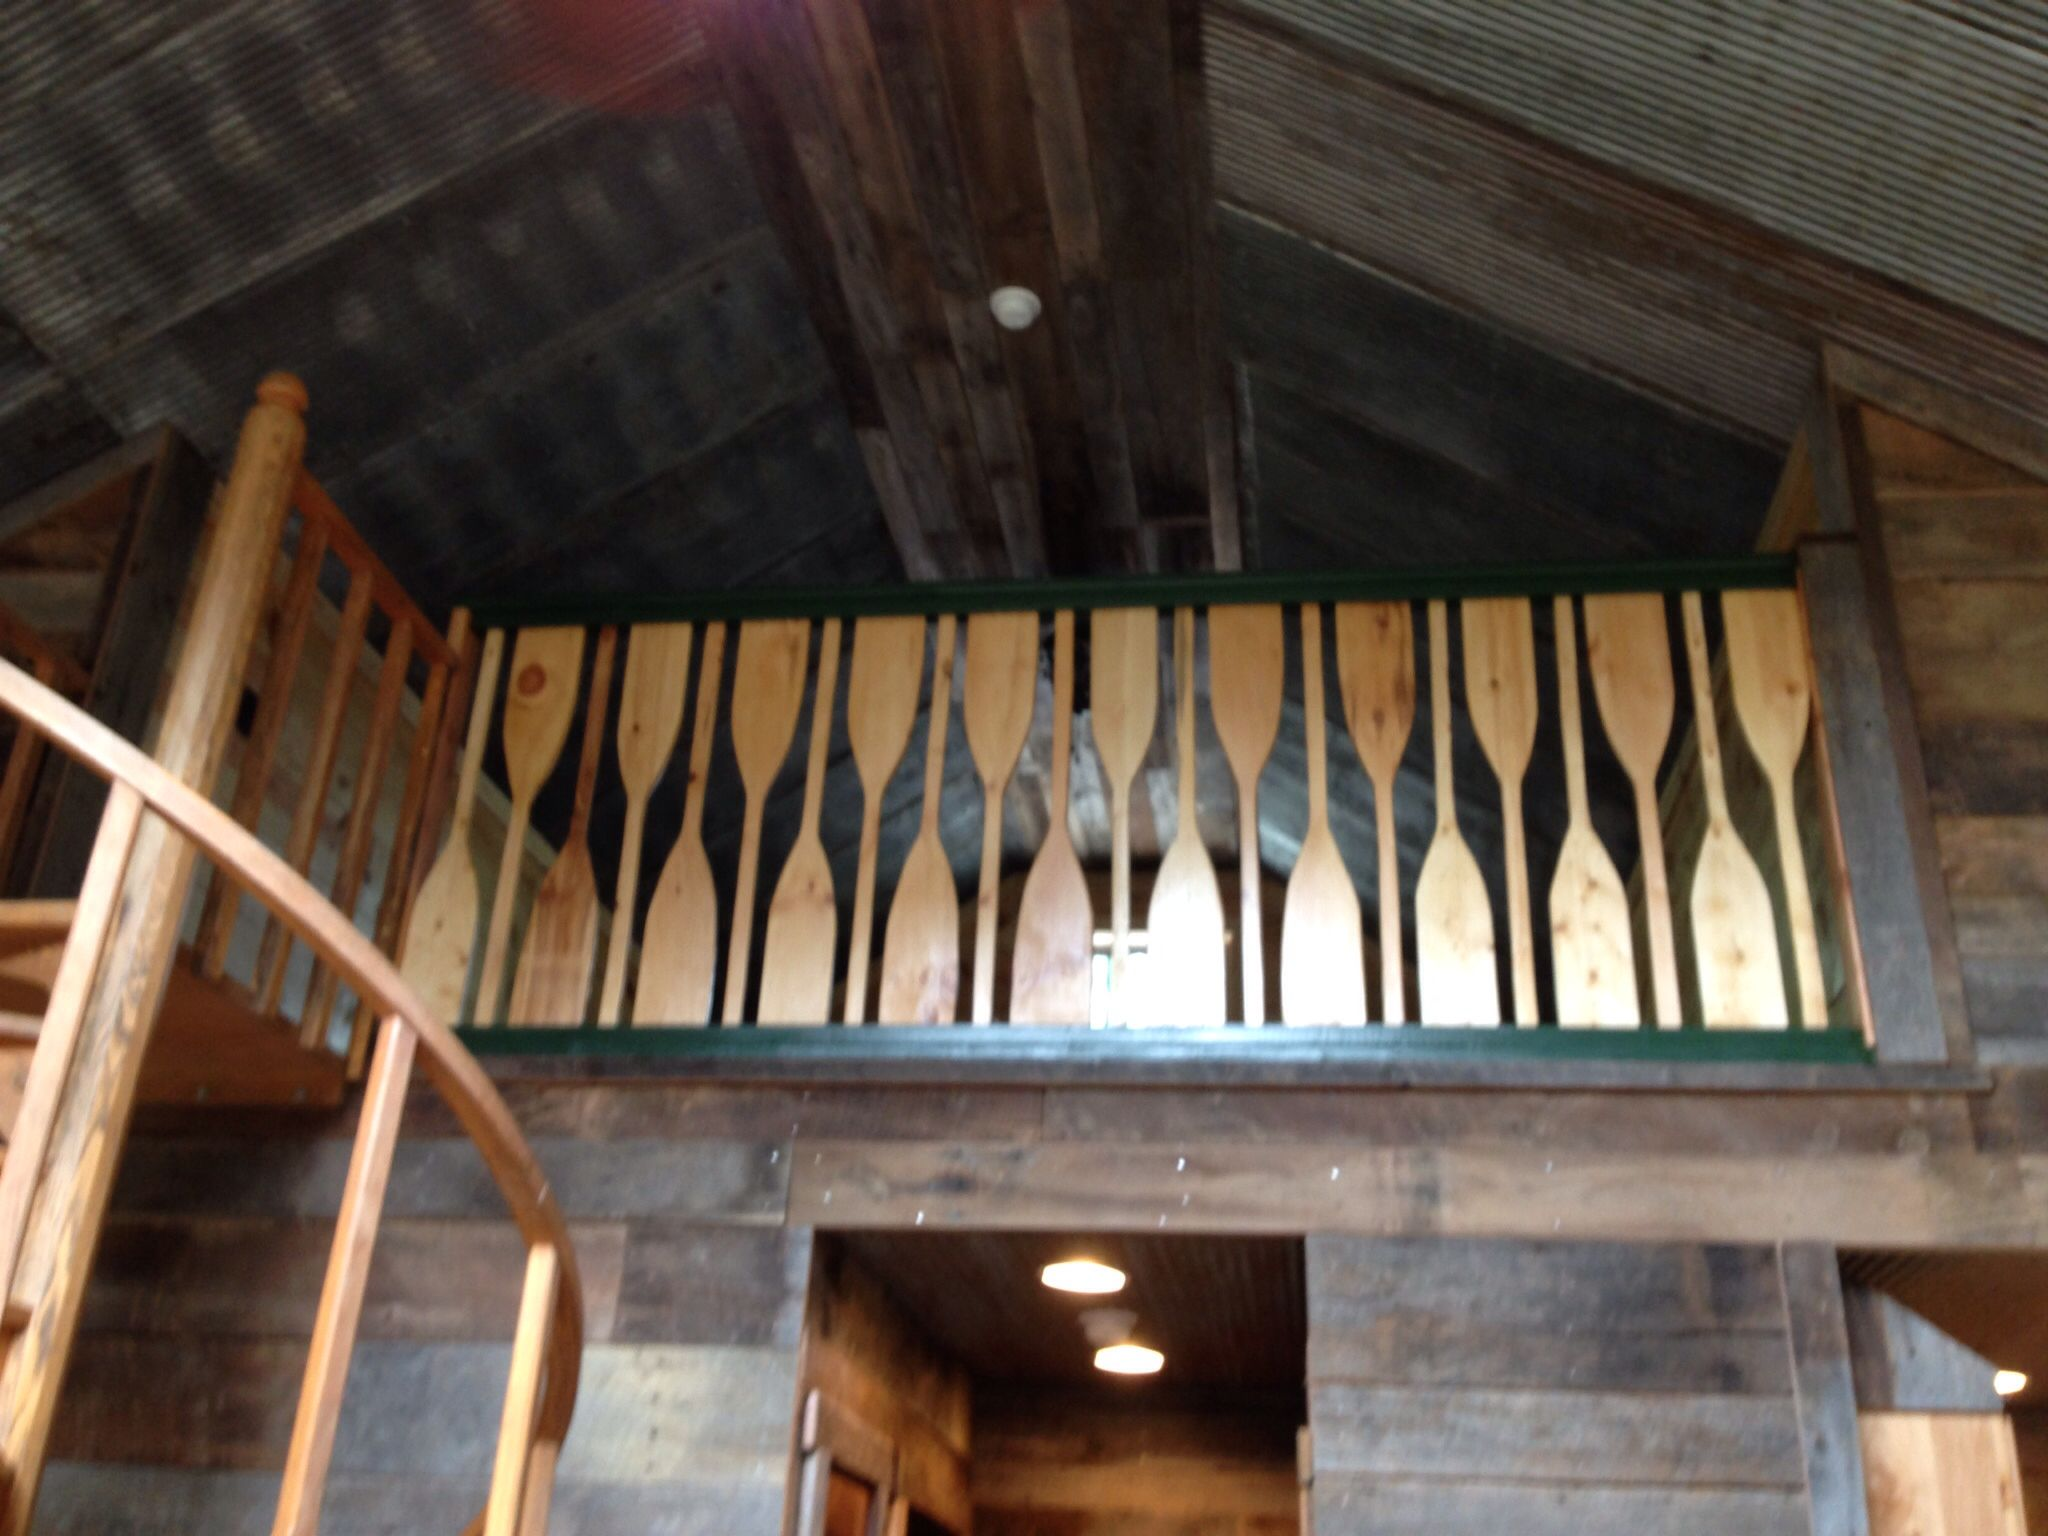 Boat Paddle Railing Our Cabin Cottage Stairs Wood